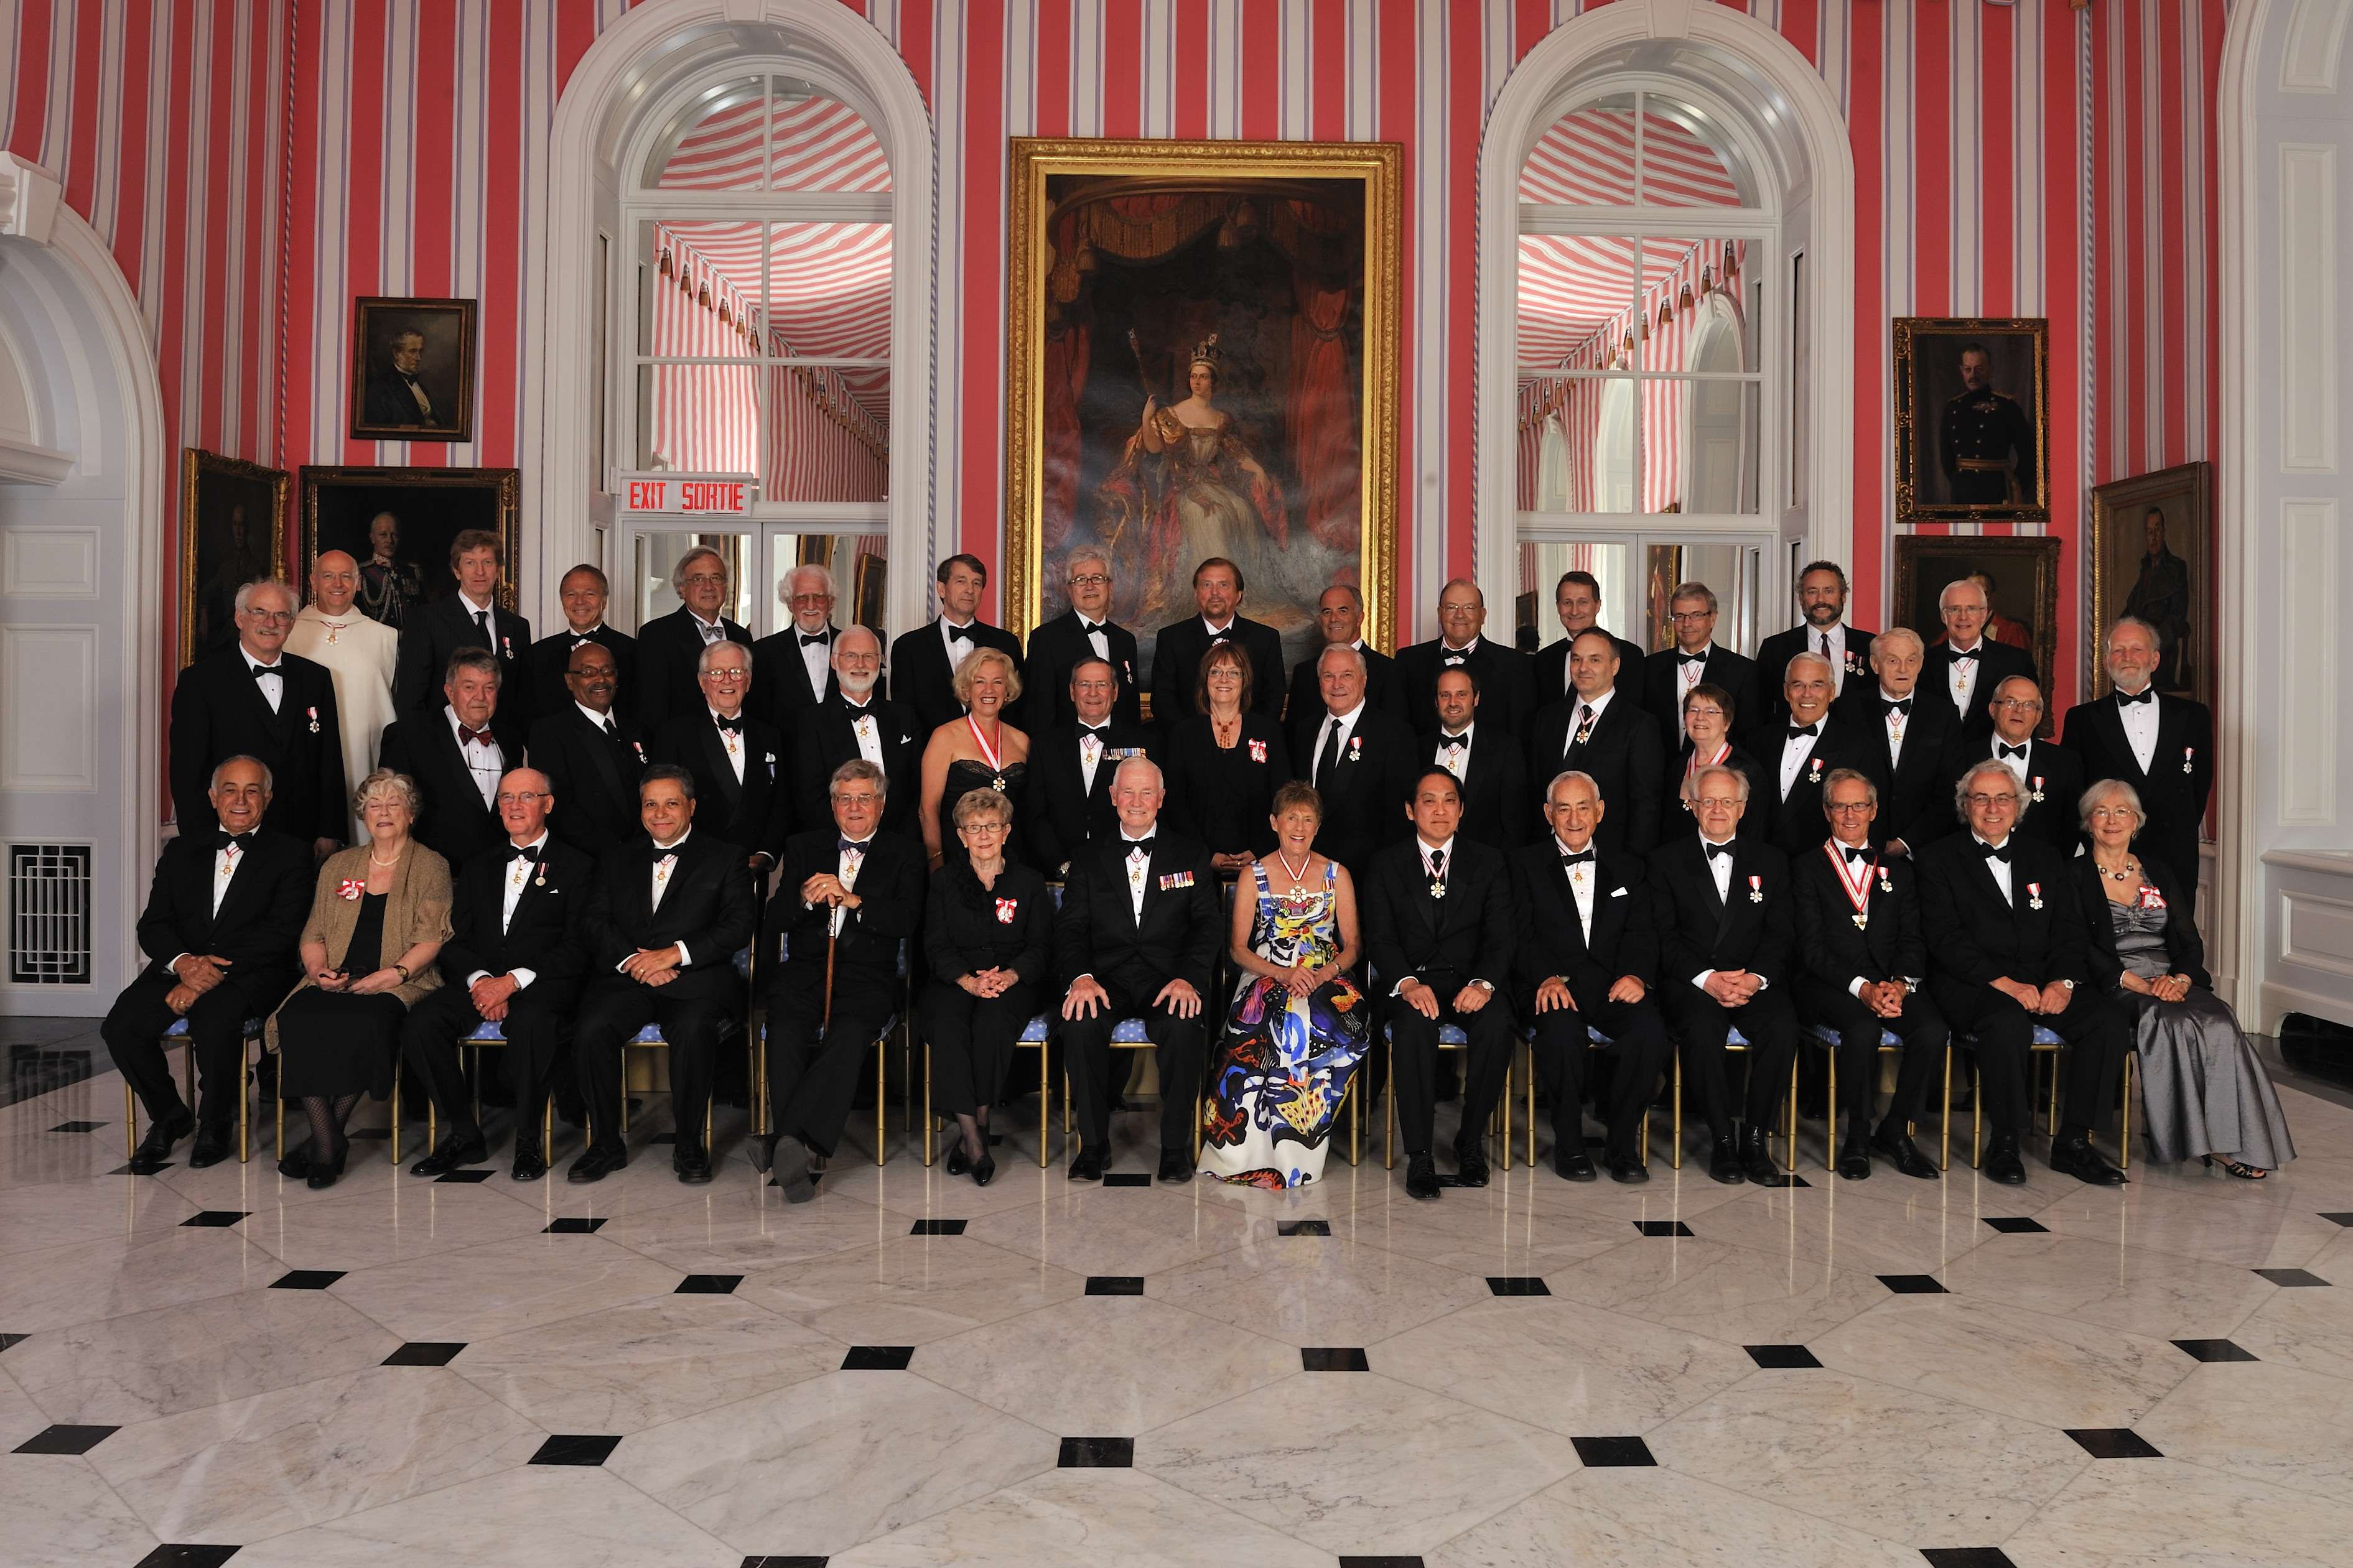 Their Excellencies are pictured with the recipients that were invested into the Order of Canada on May 25, 2012.